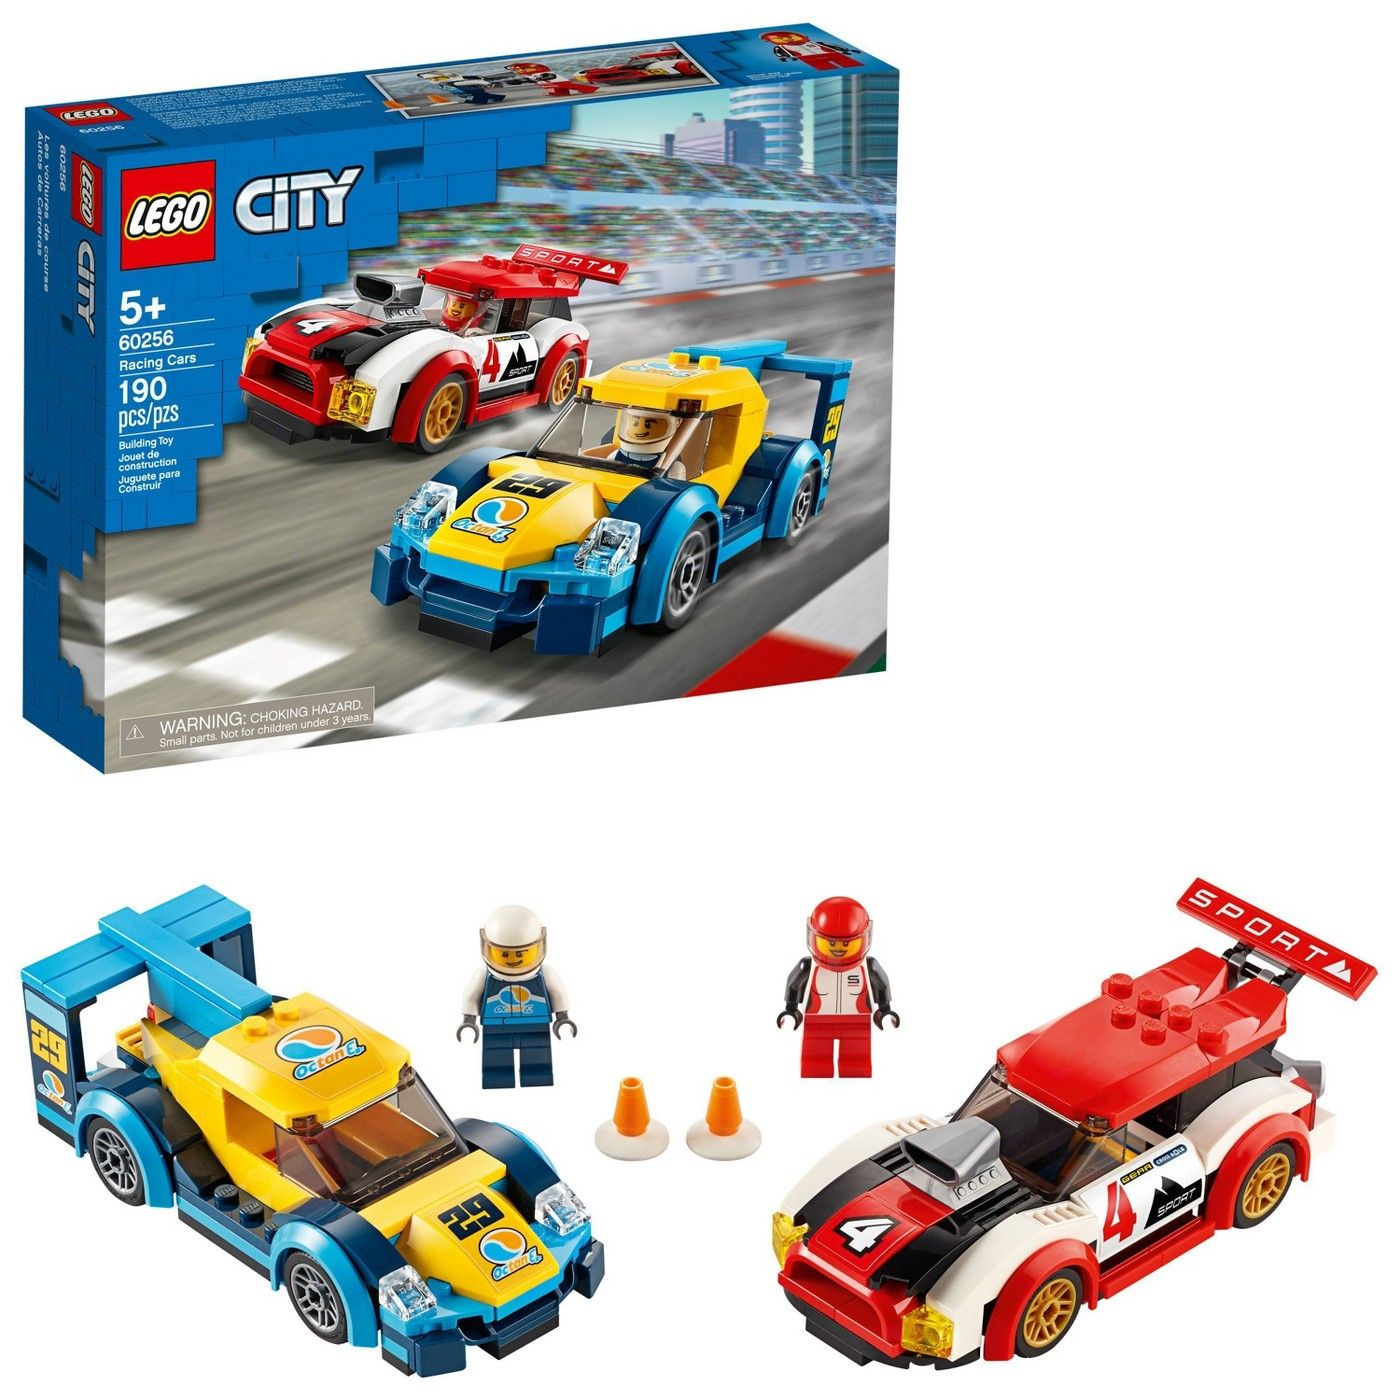 Pin By Katiuscia Sales Xisto On Batman In 2020 City Racing Lego City Racing Driver